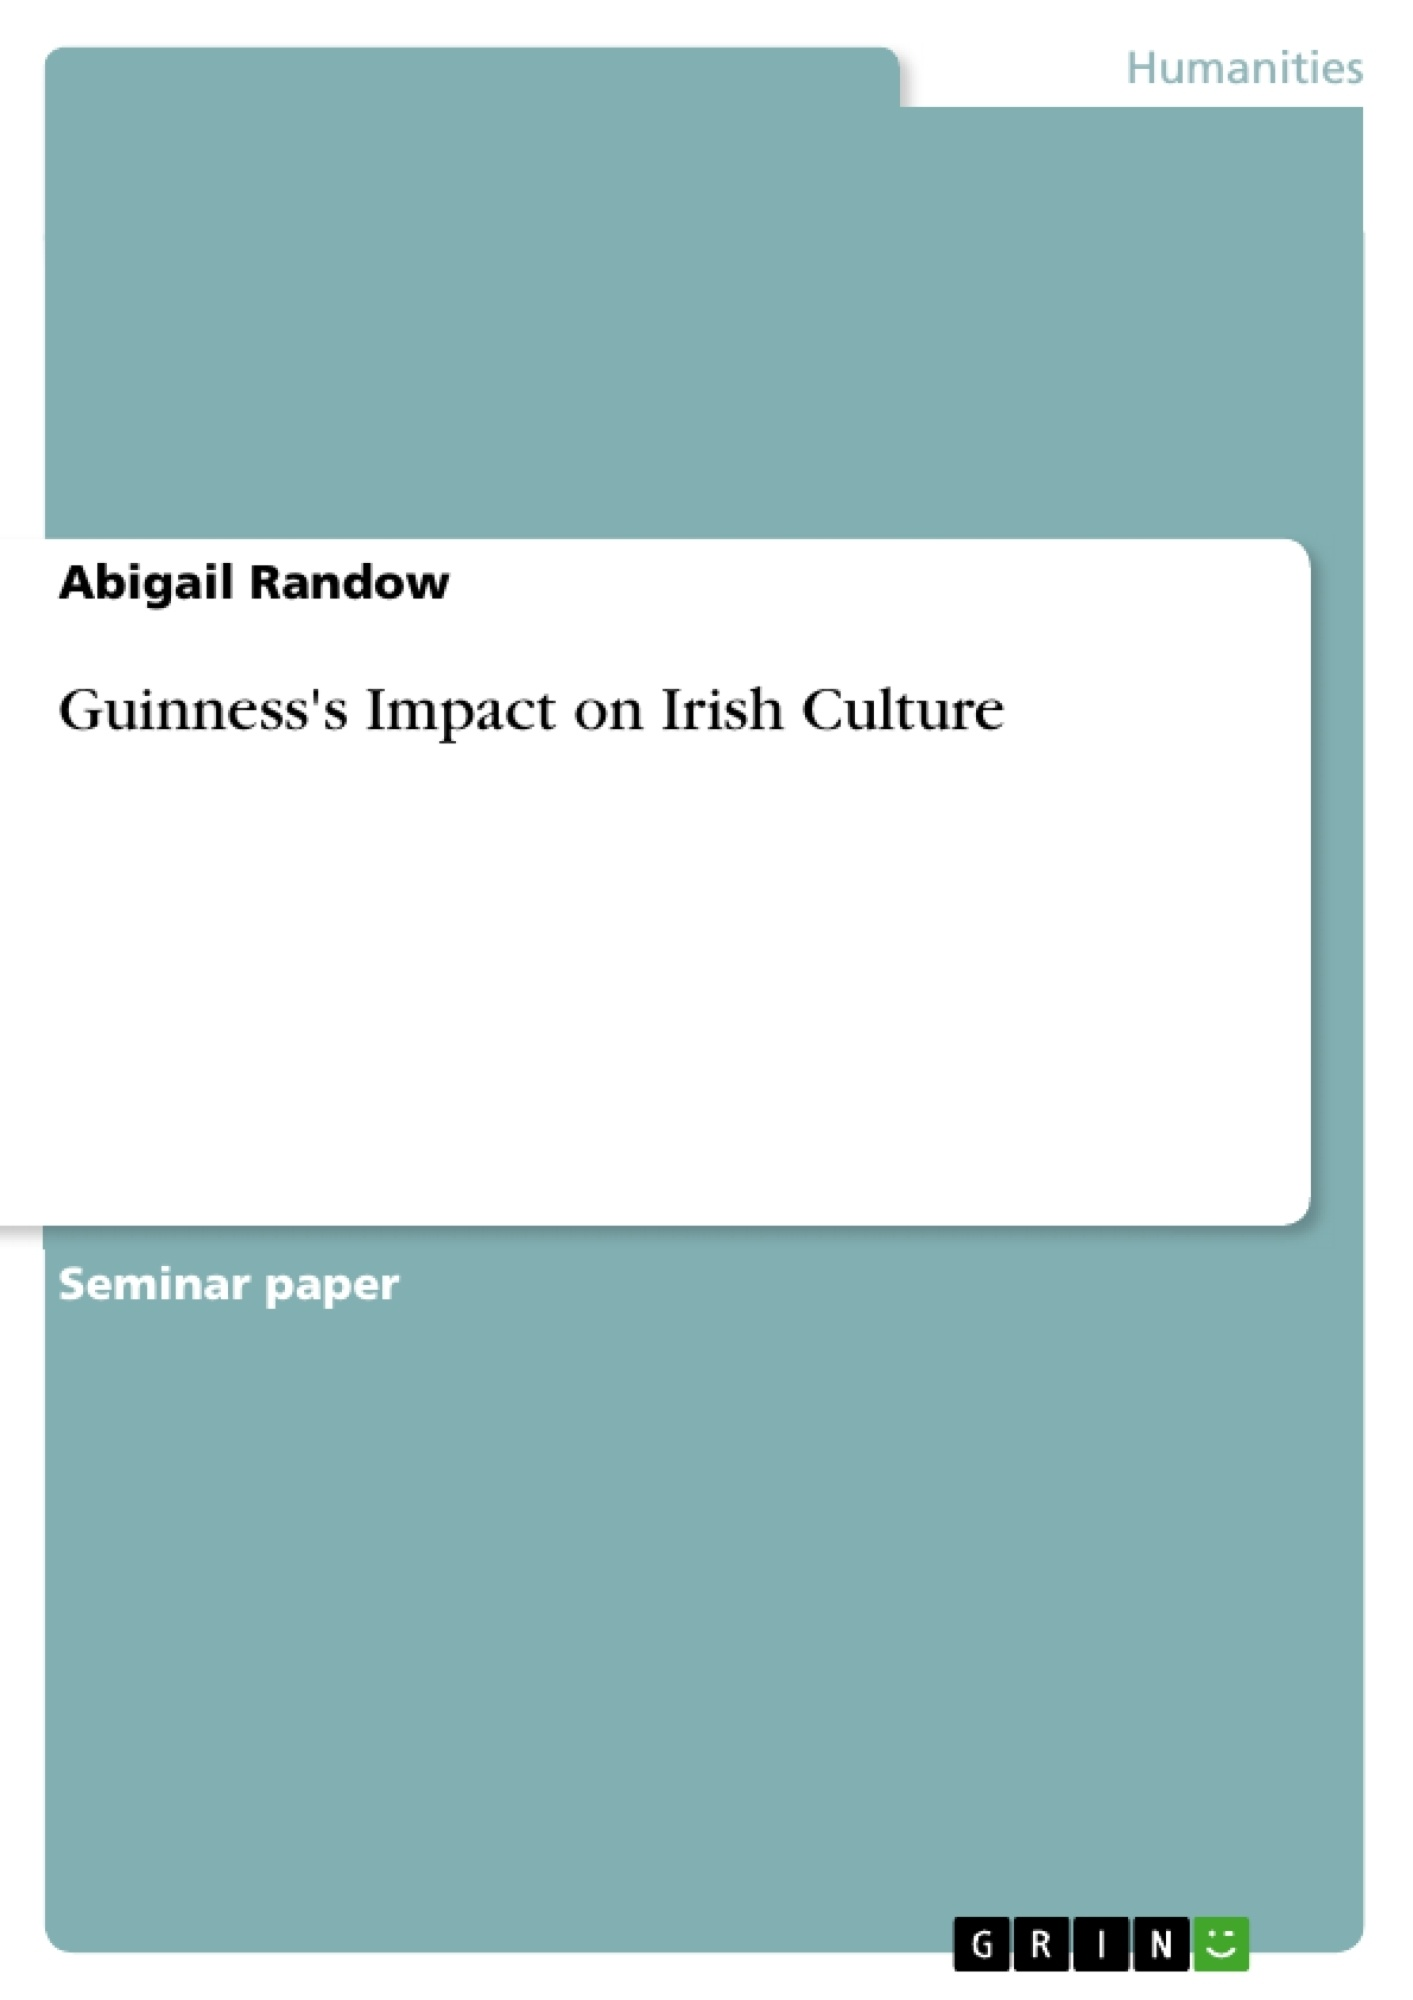 Title: Guinness's Impact on Irish Culture